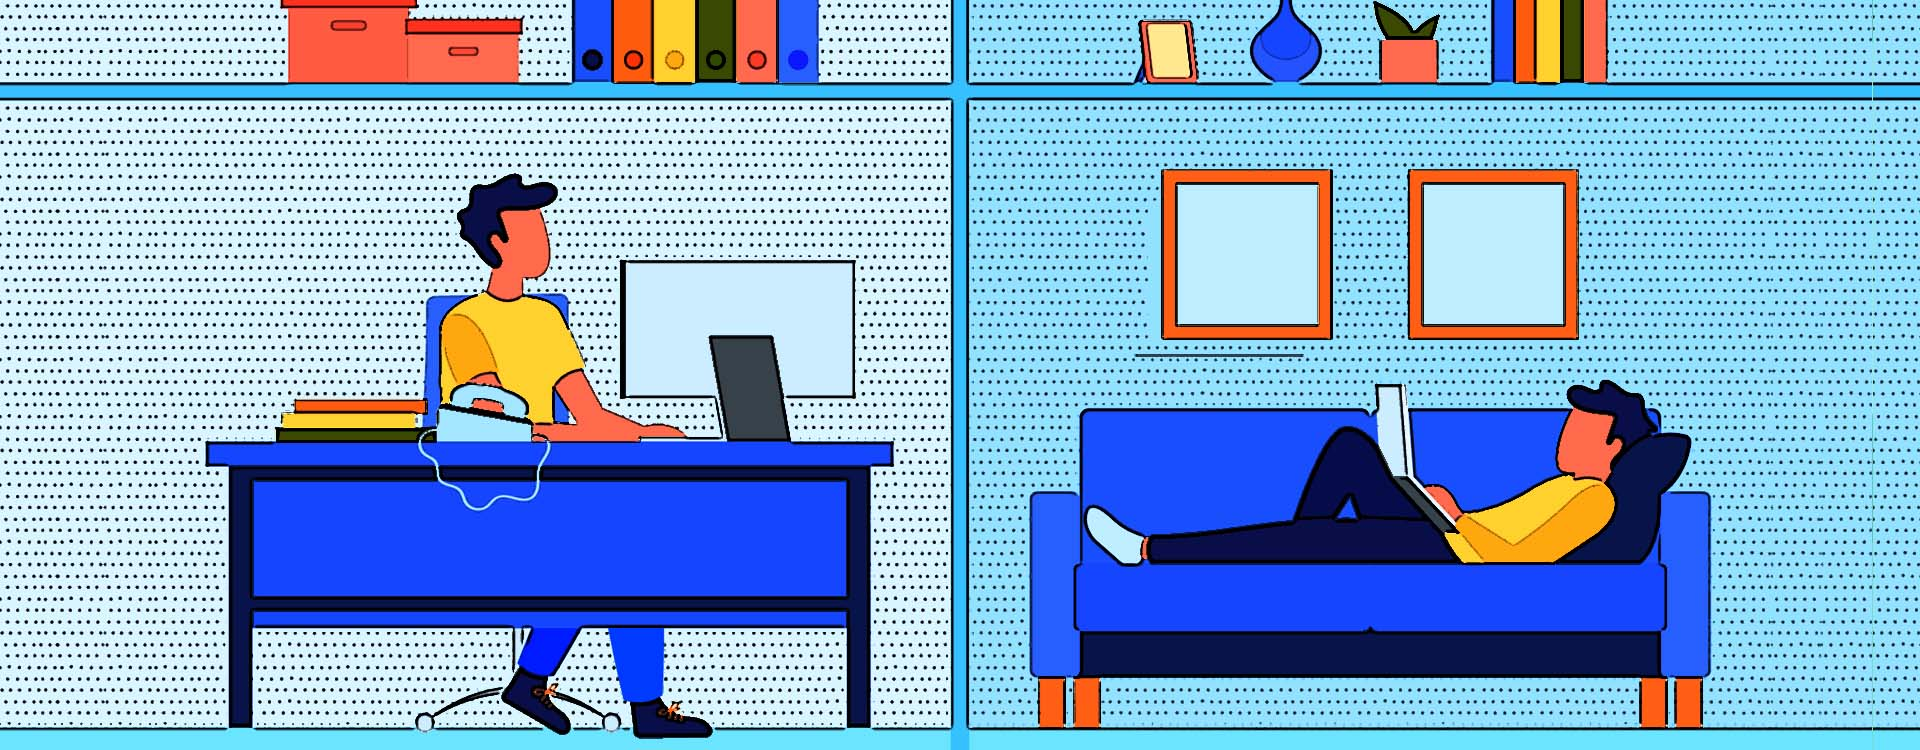 Work from Home: Business Benefits and the Pitfalls